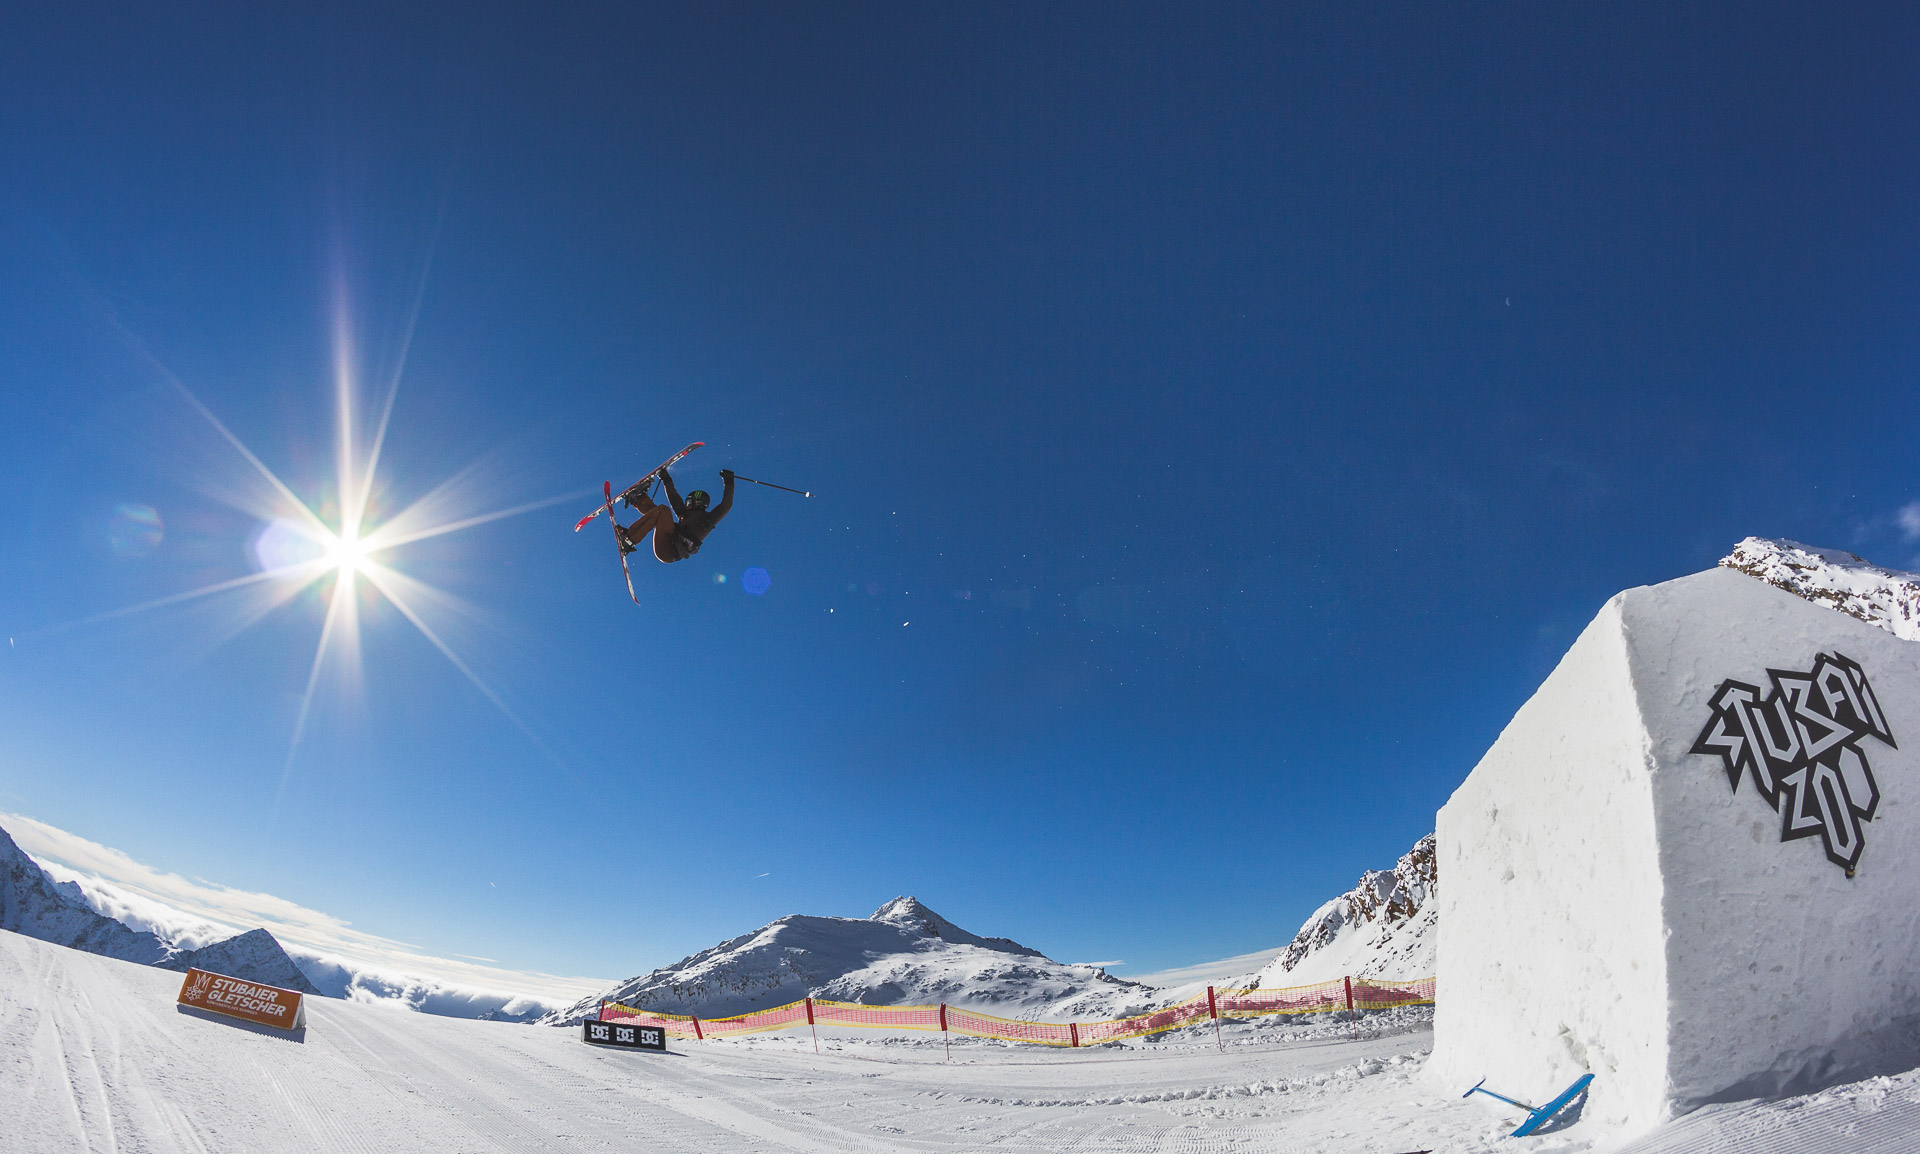 First Days at Stubai Zoo - Rider: Daniel Hanka